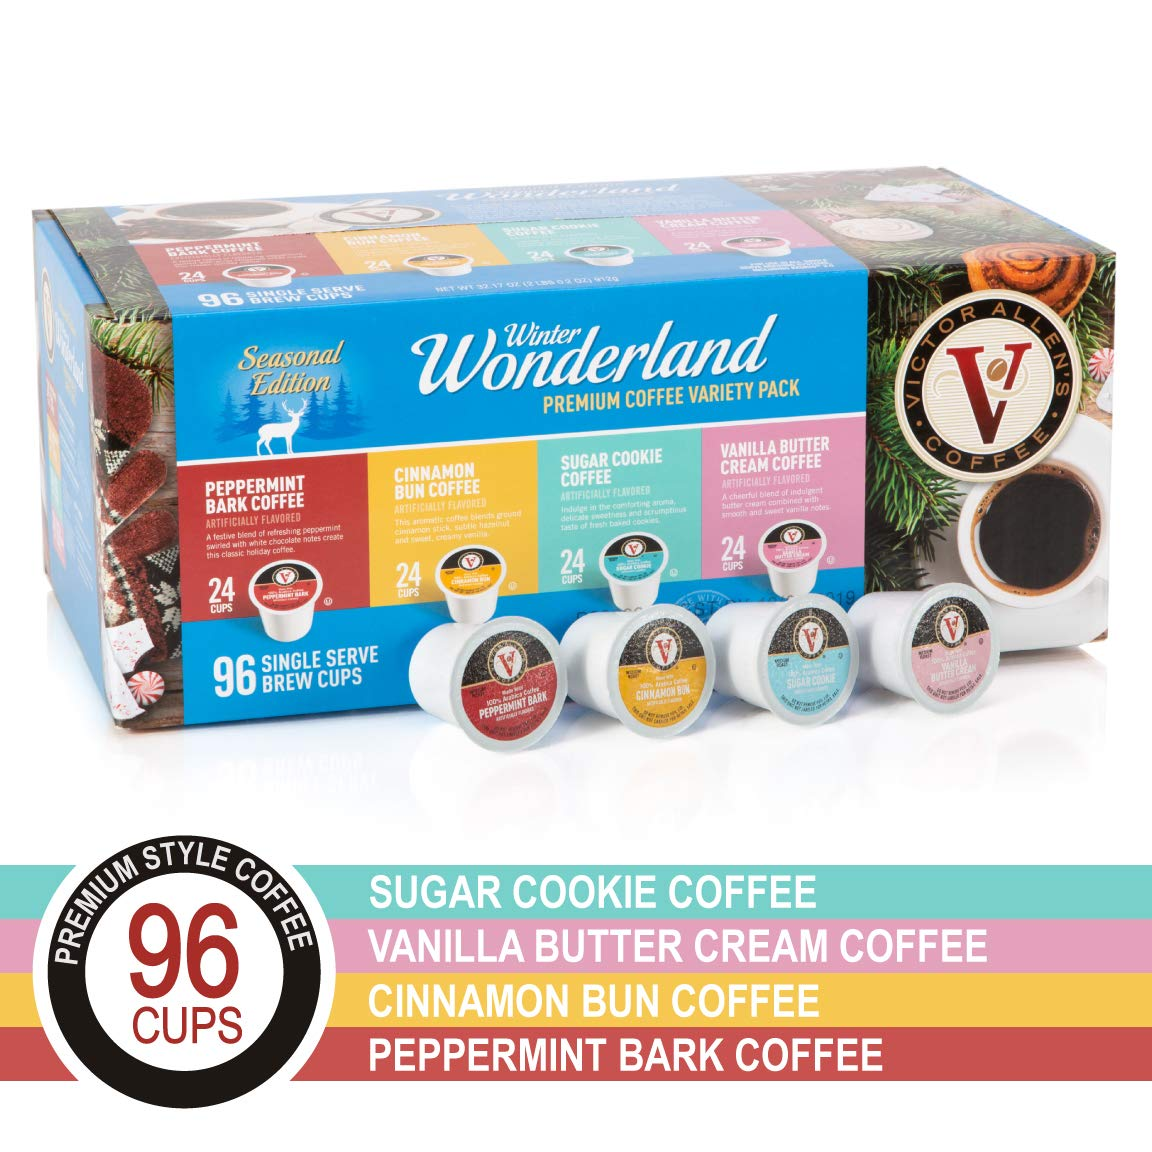 Winter Wonderland Variety Pack for K-Cup Keurig 2.0 Brewers, 96 Count Victor Allen's Coffee Medium Roast Single Serve Coffee Pods